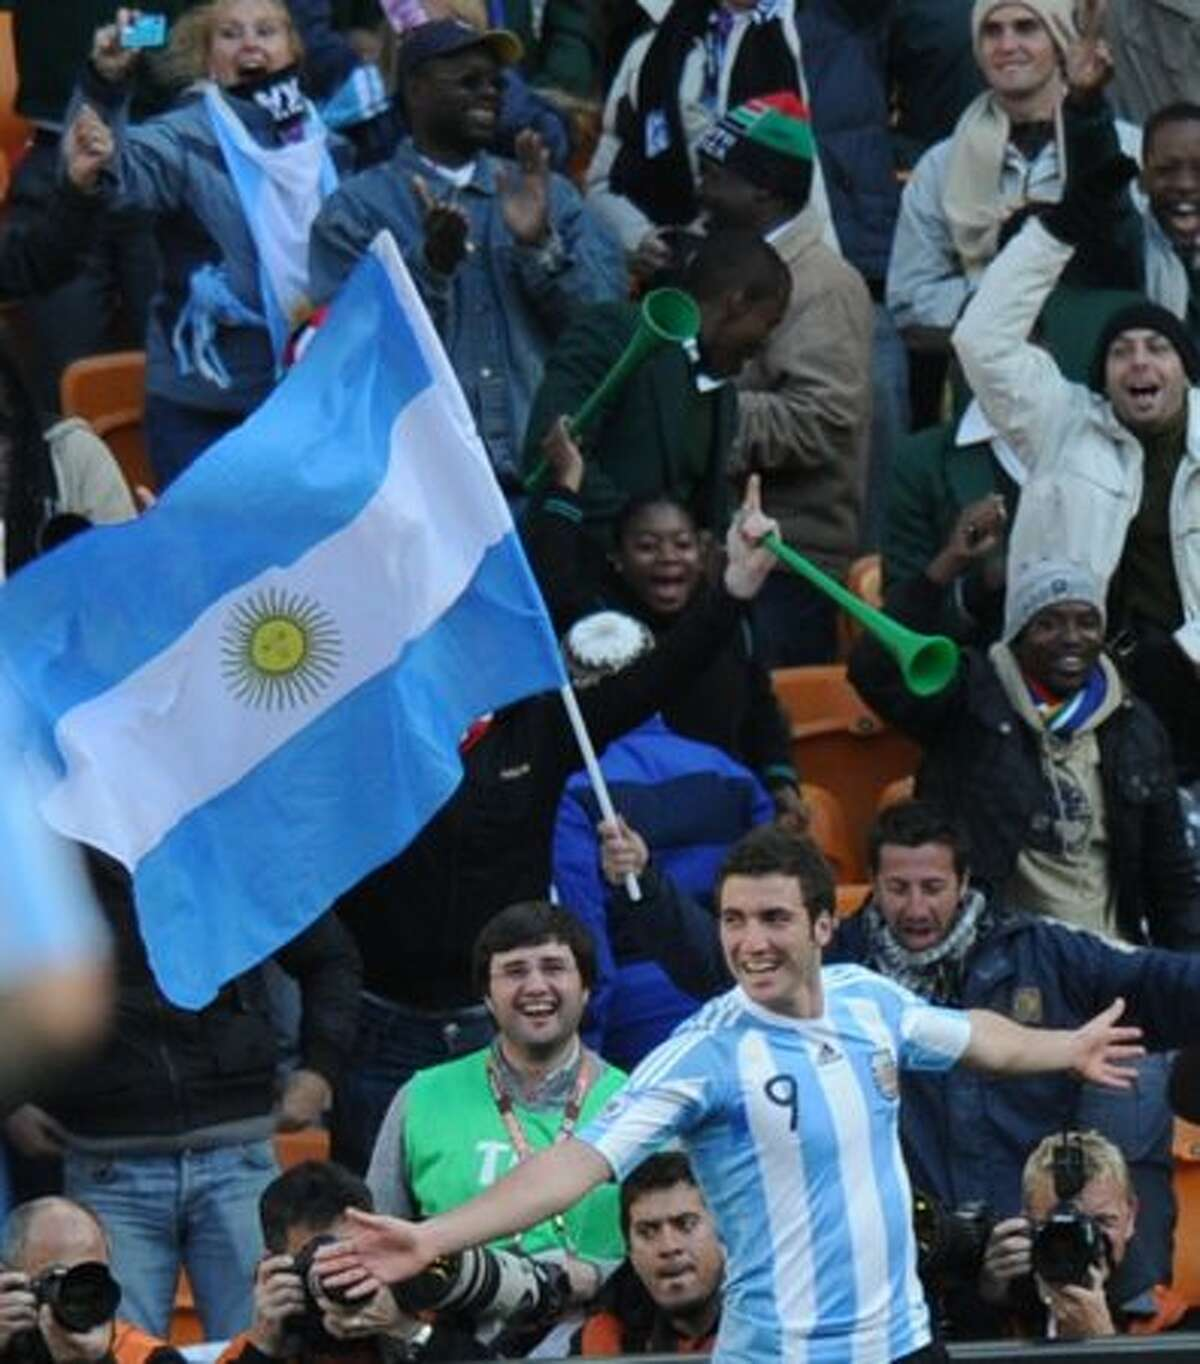 Argentina's striker Gonzalo Higuain celebrates after scoring his third goal of the match during their Group B first round 2010 World Cup football match on June 17, 2010 at Soccer City stadium in Soweto, suburban Johannesburg.